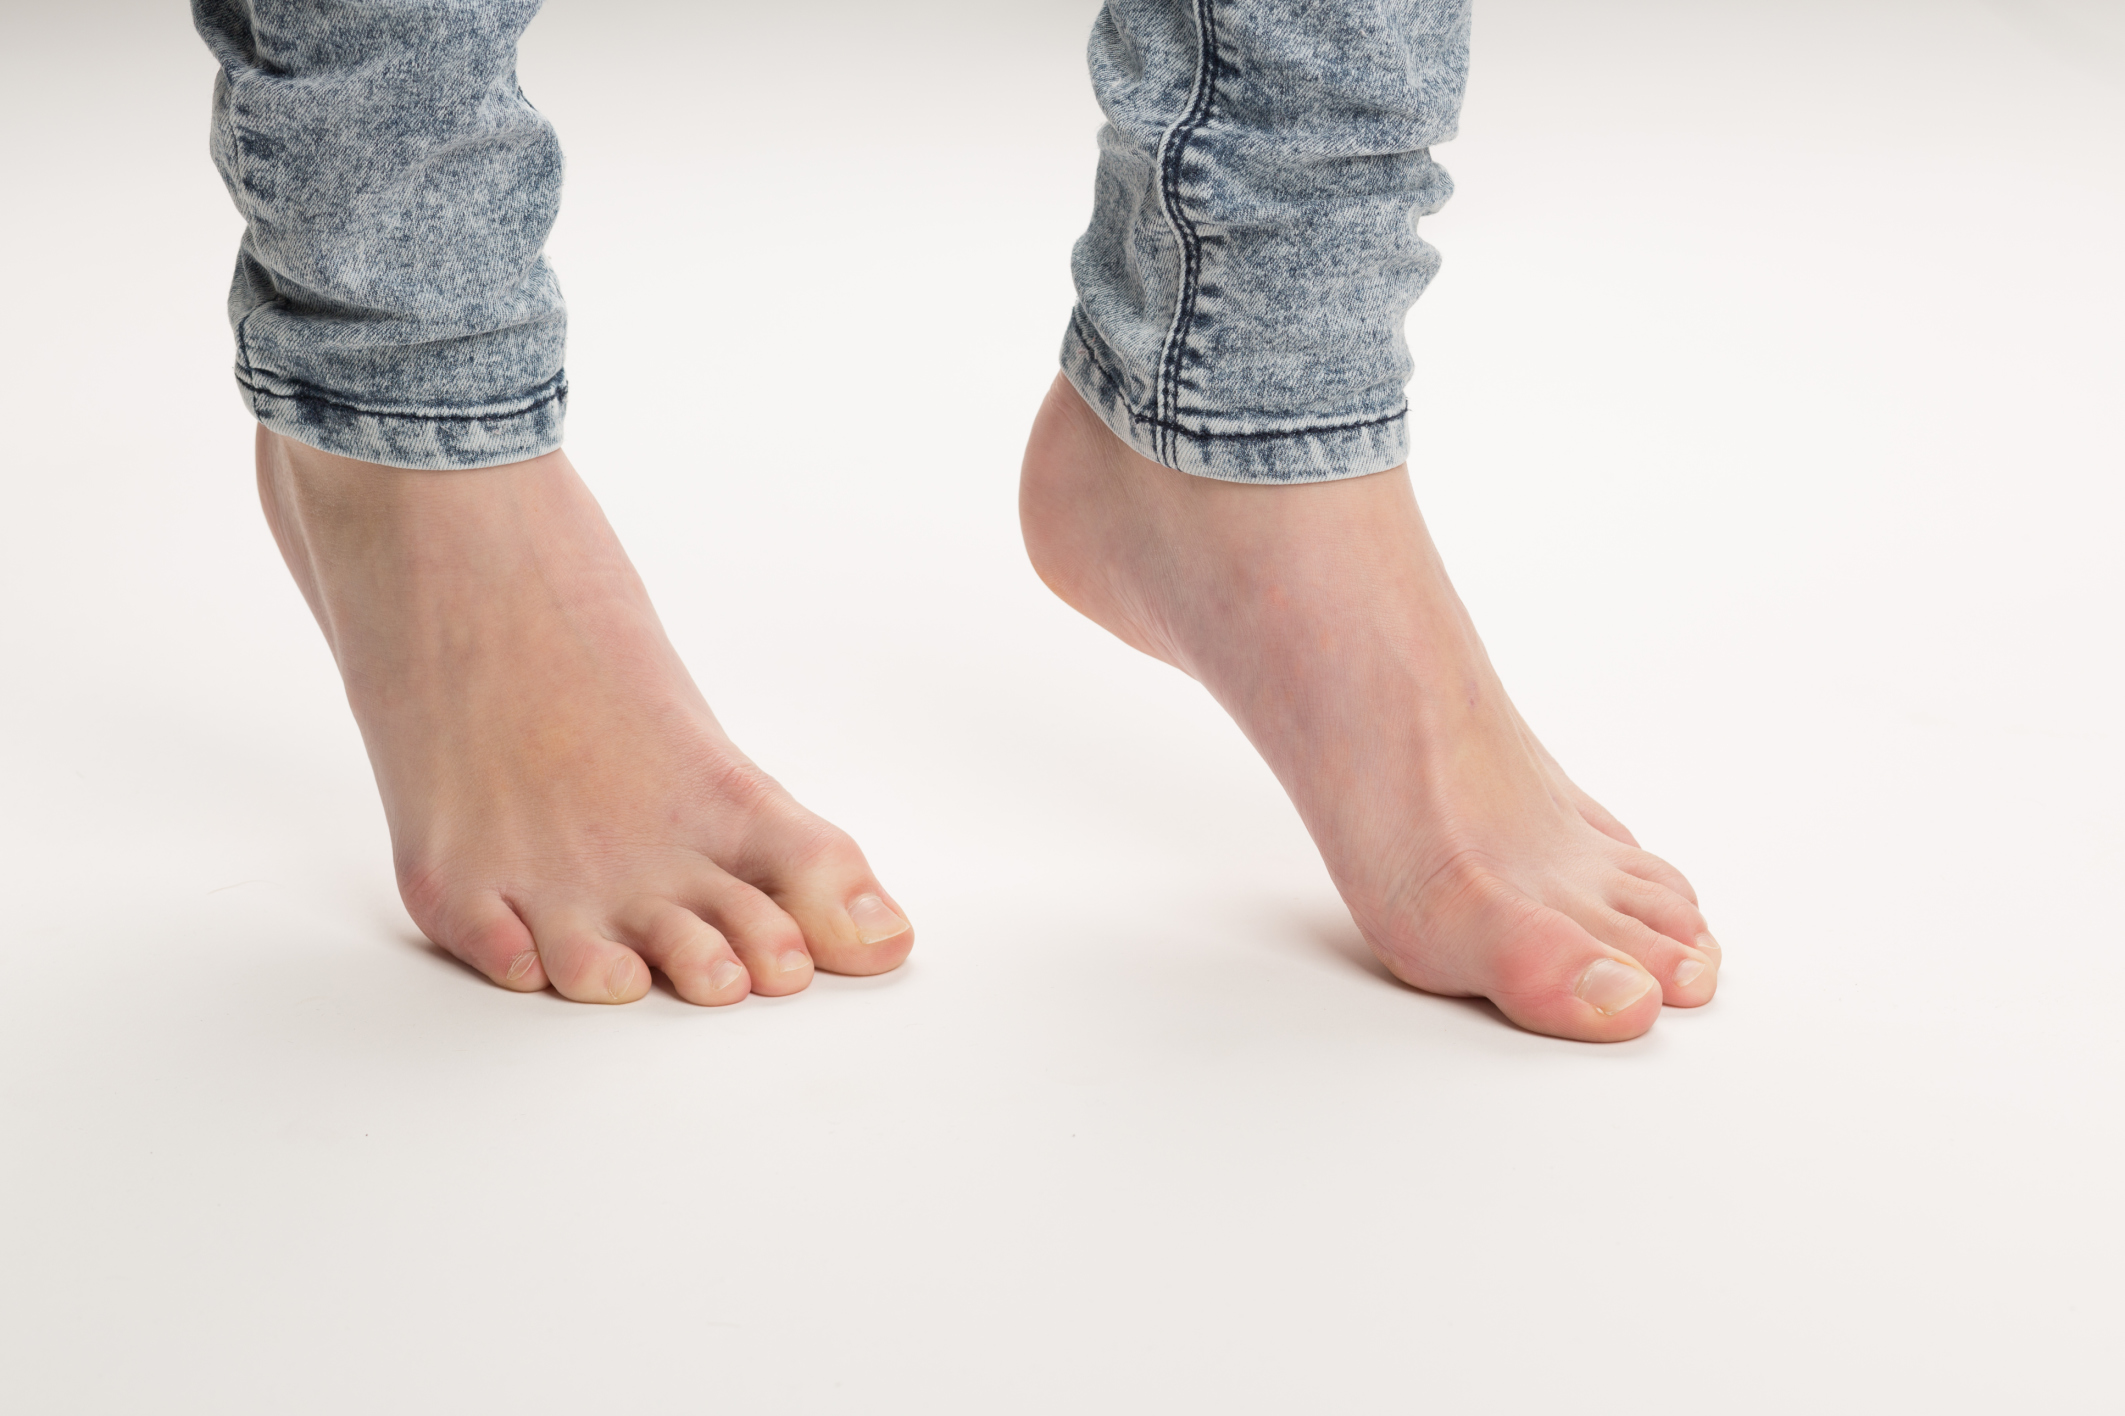 Foot Exercises for Metatarsal Pain | LIVESTRONG.COM